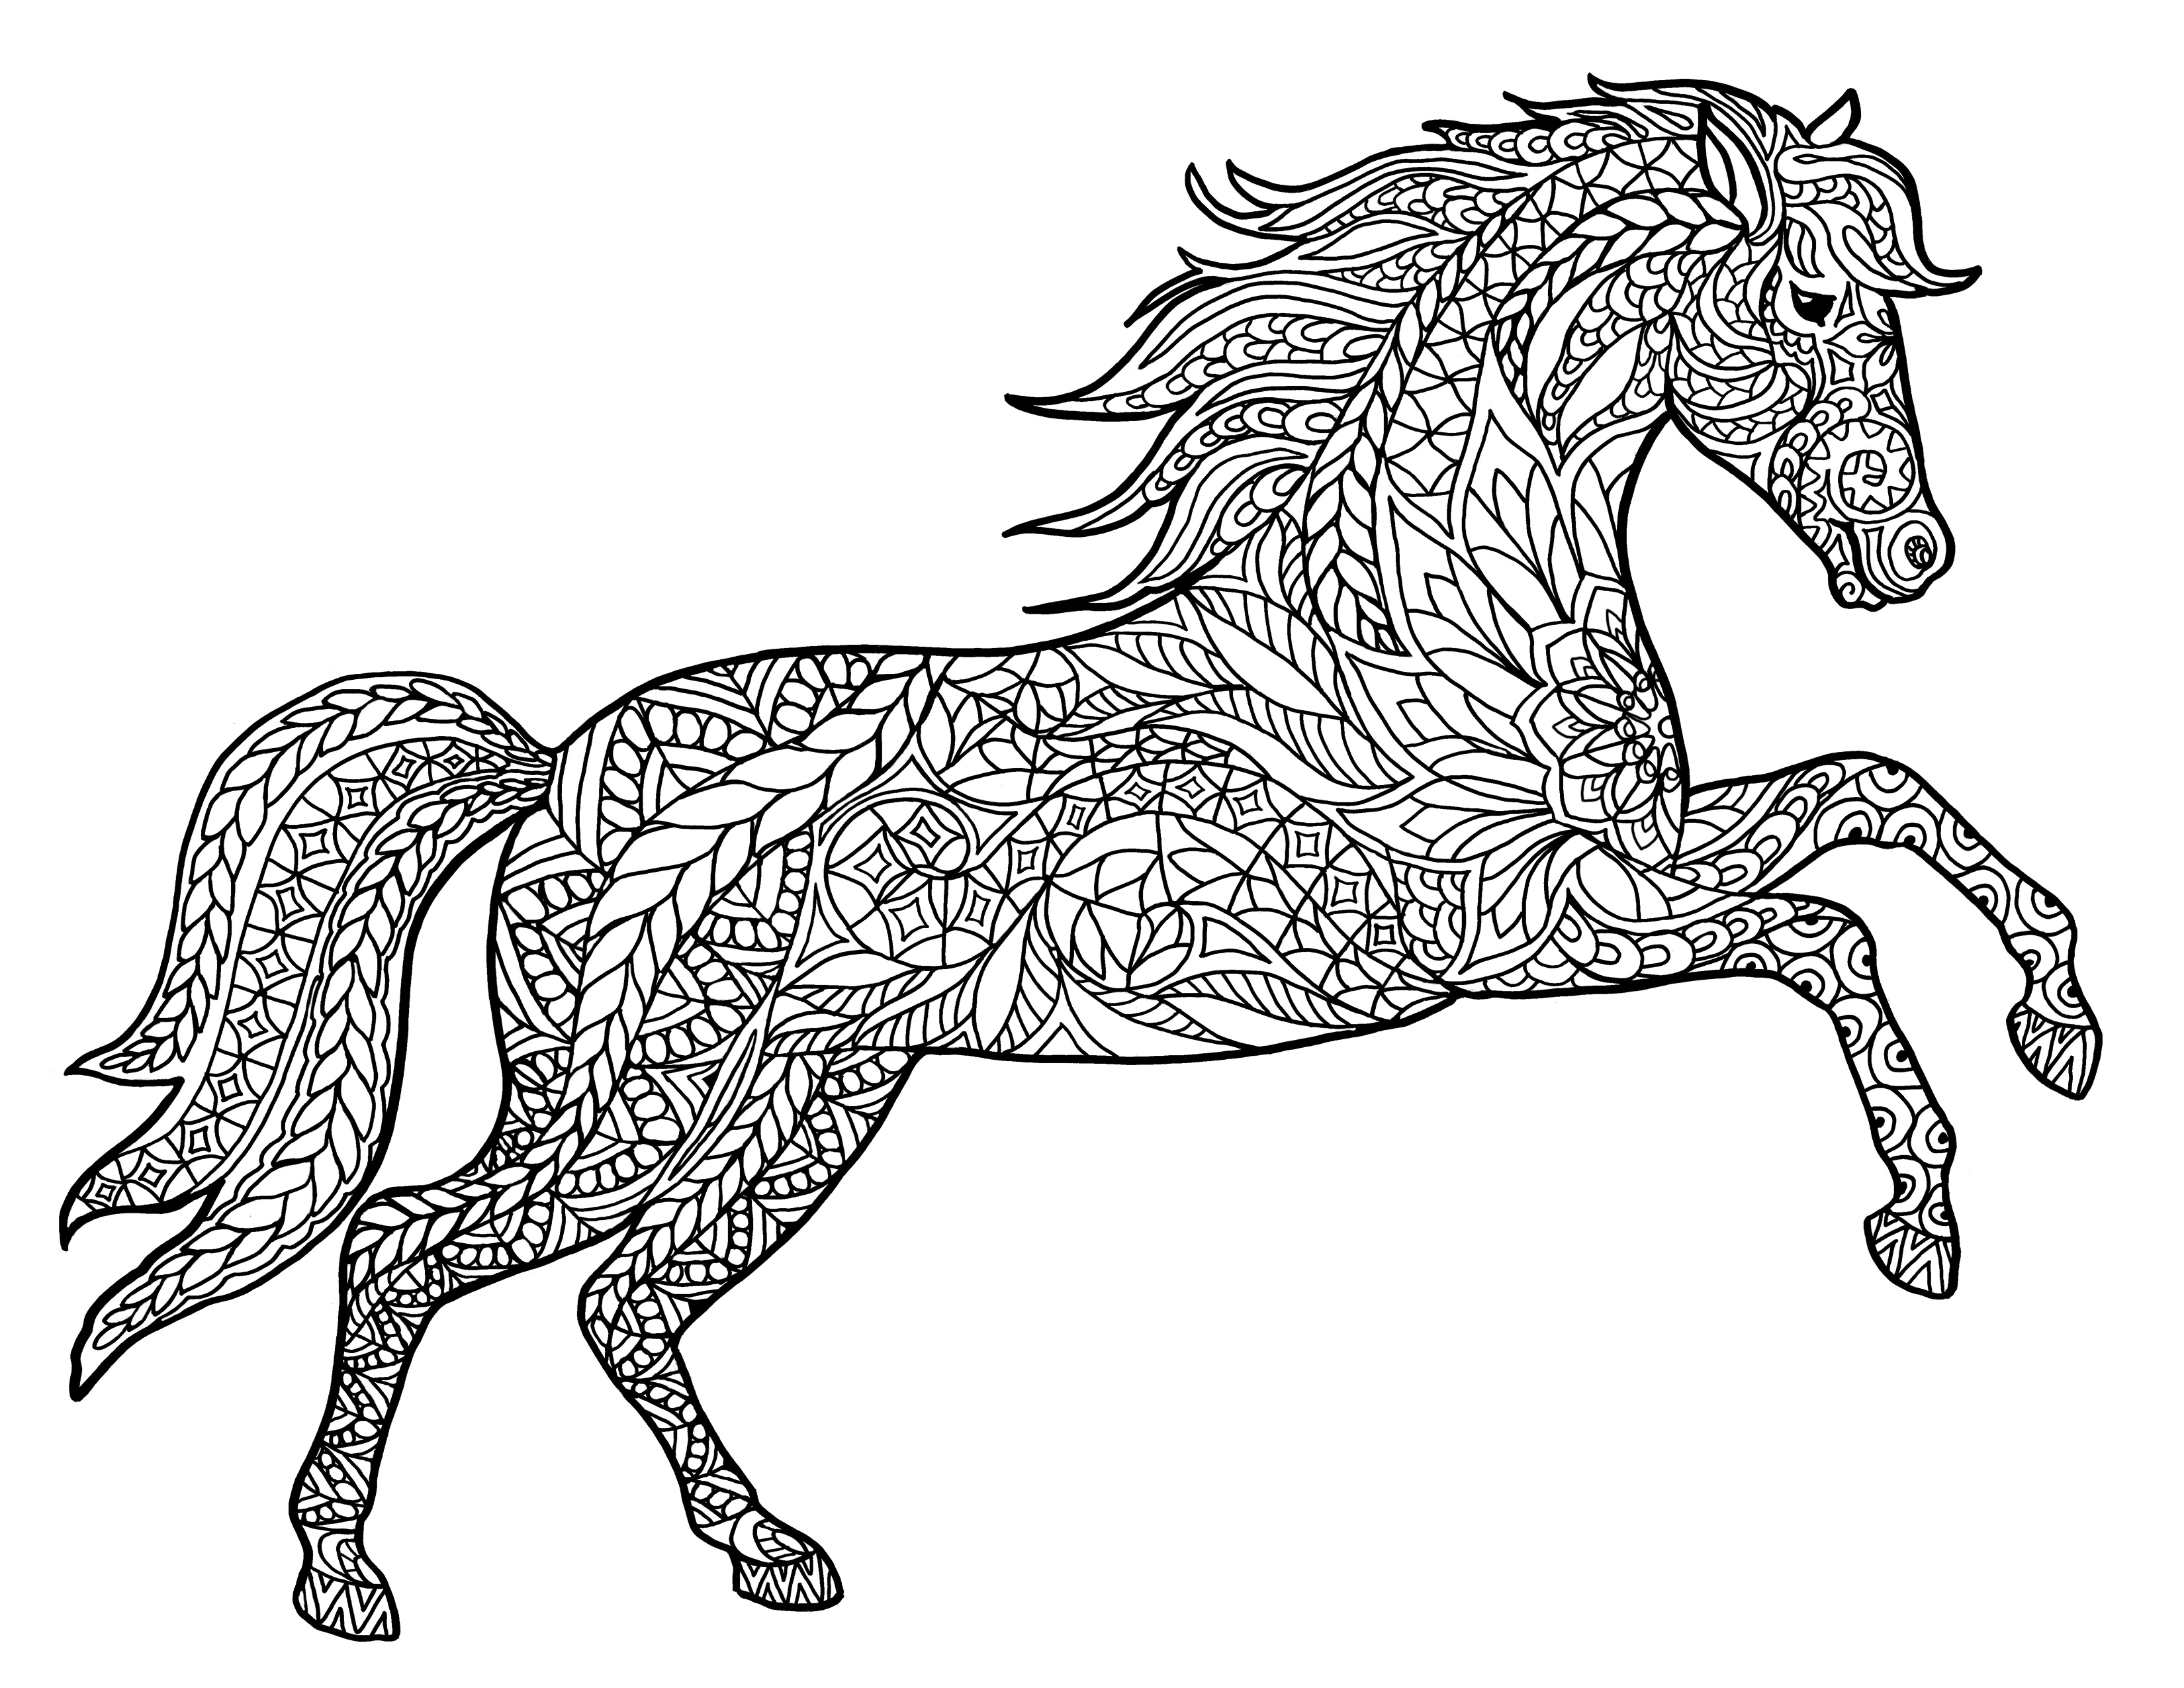 horse coloring adult coloring pages animals best coloring pages for kids coloring horse